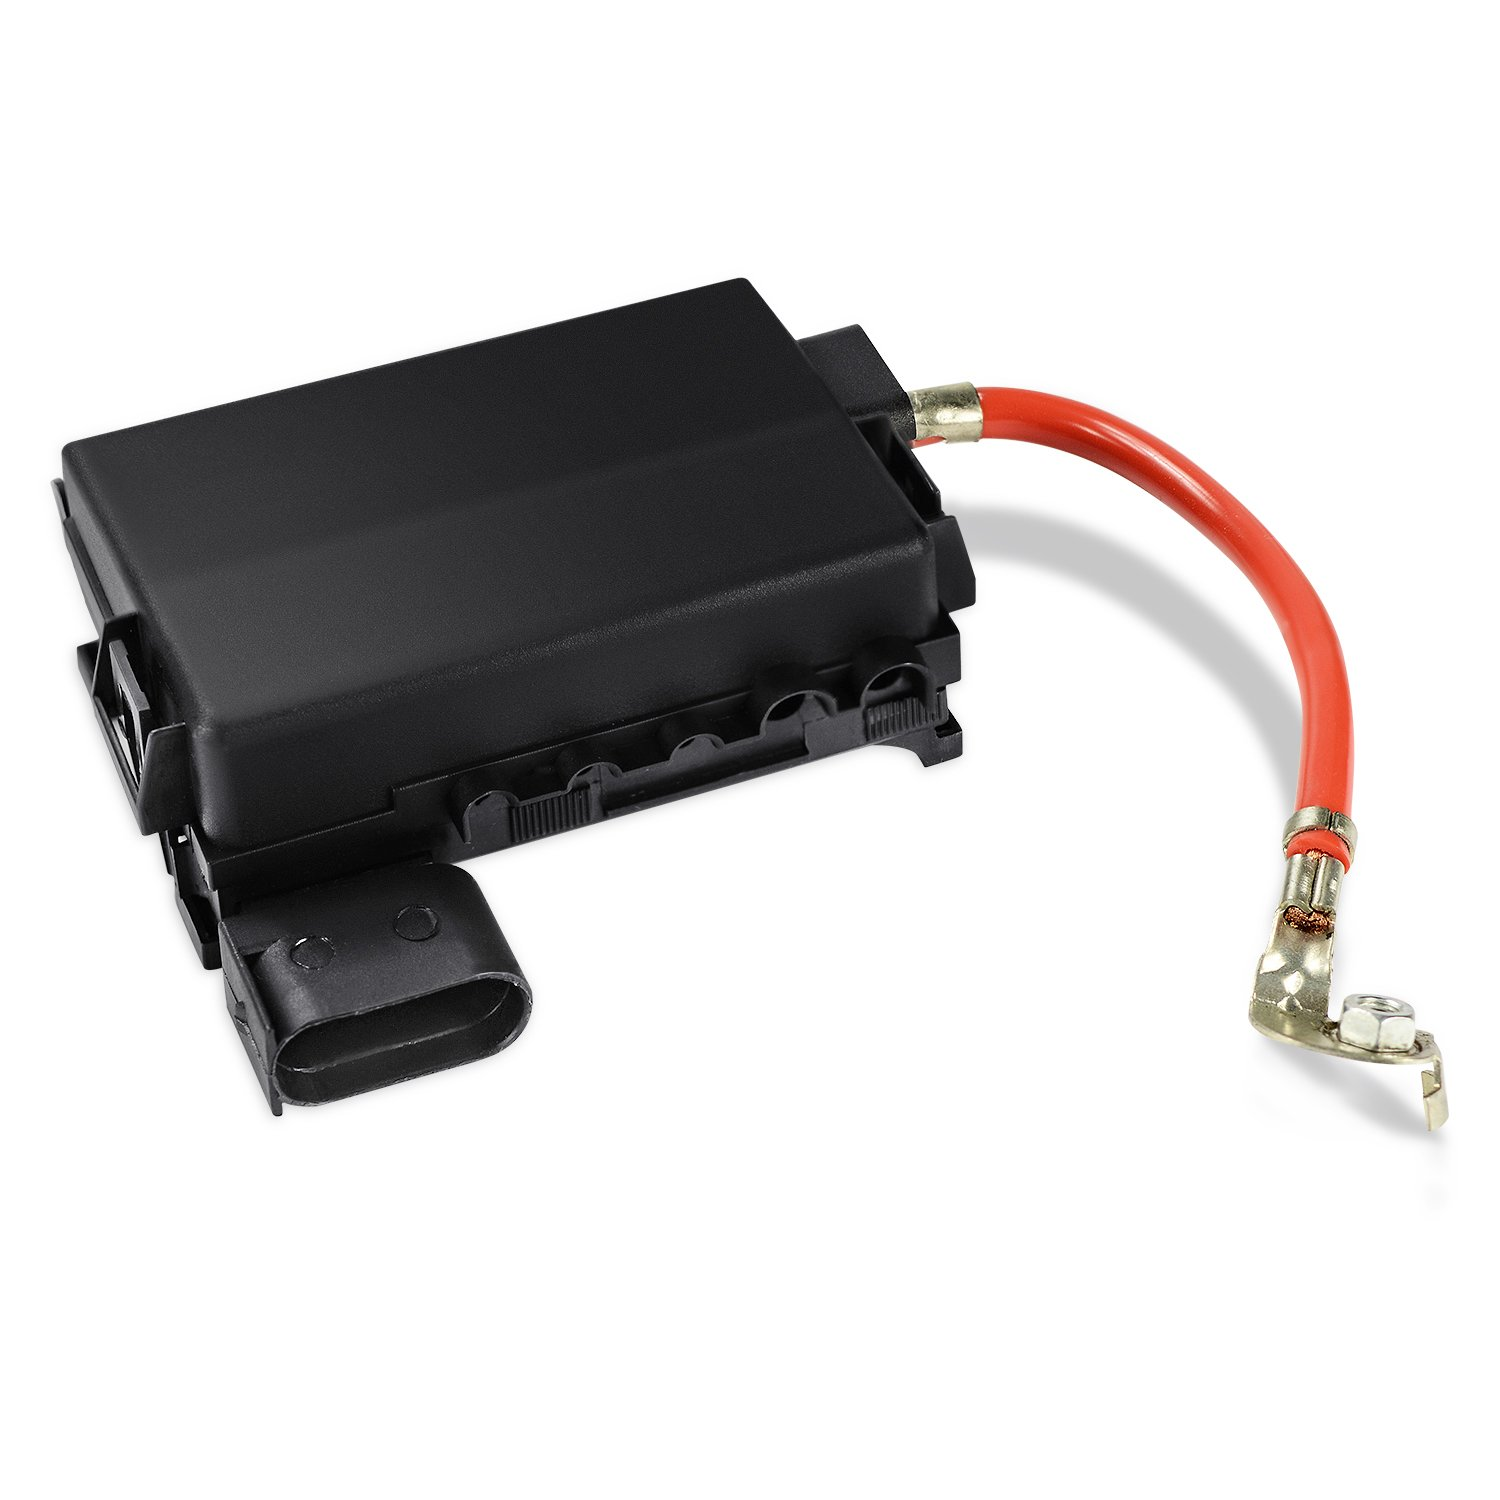 OEM Fuse Box Battery Terminal Fit for Vw Jetta Golf Mk4 Beetle 2.0 1.9tdi,  Battery Accessories - Amazon Canada